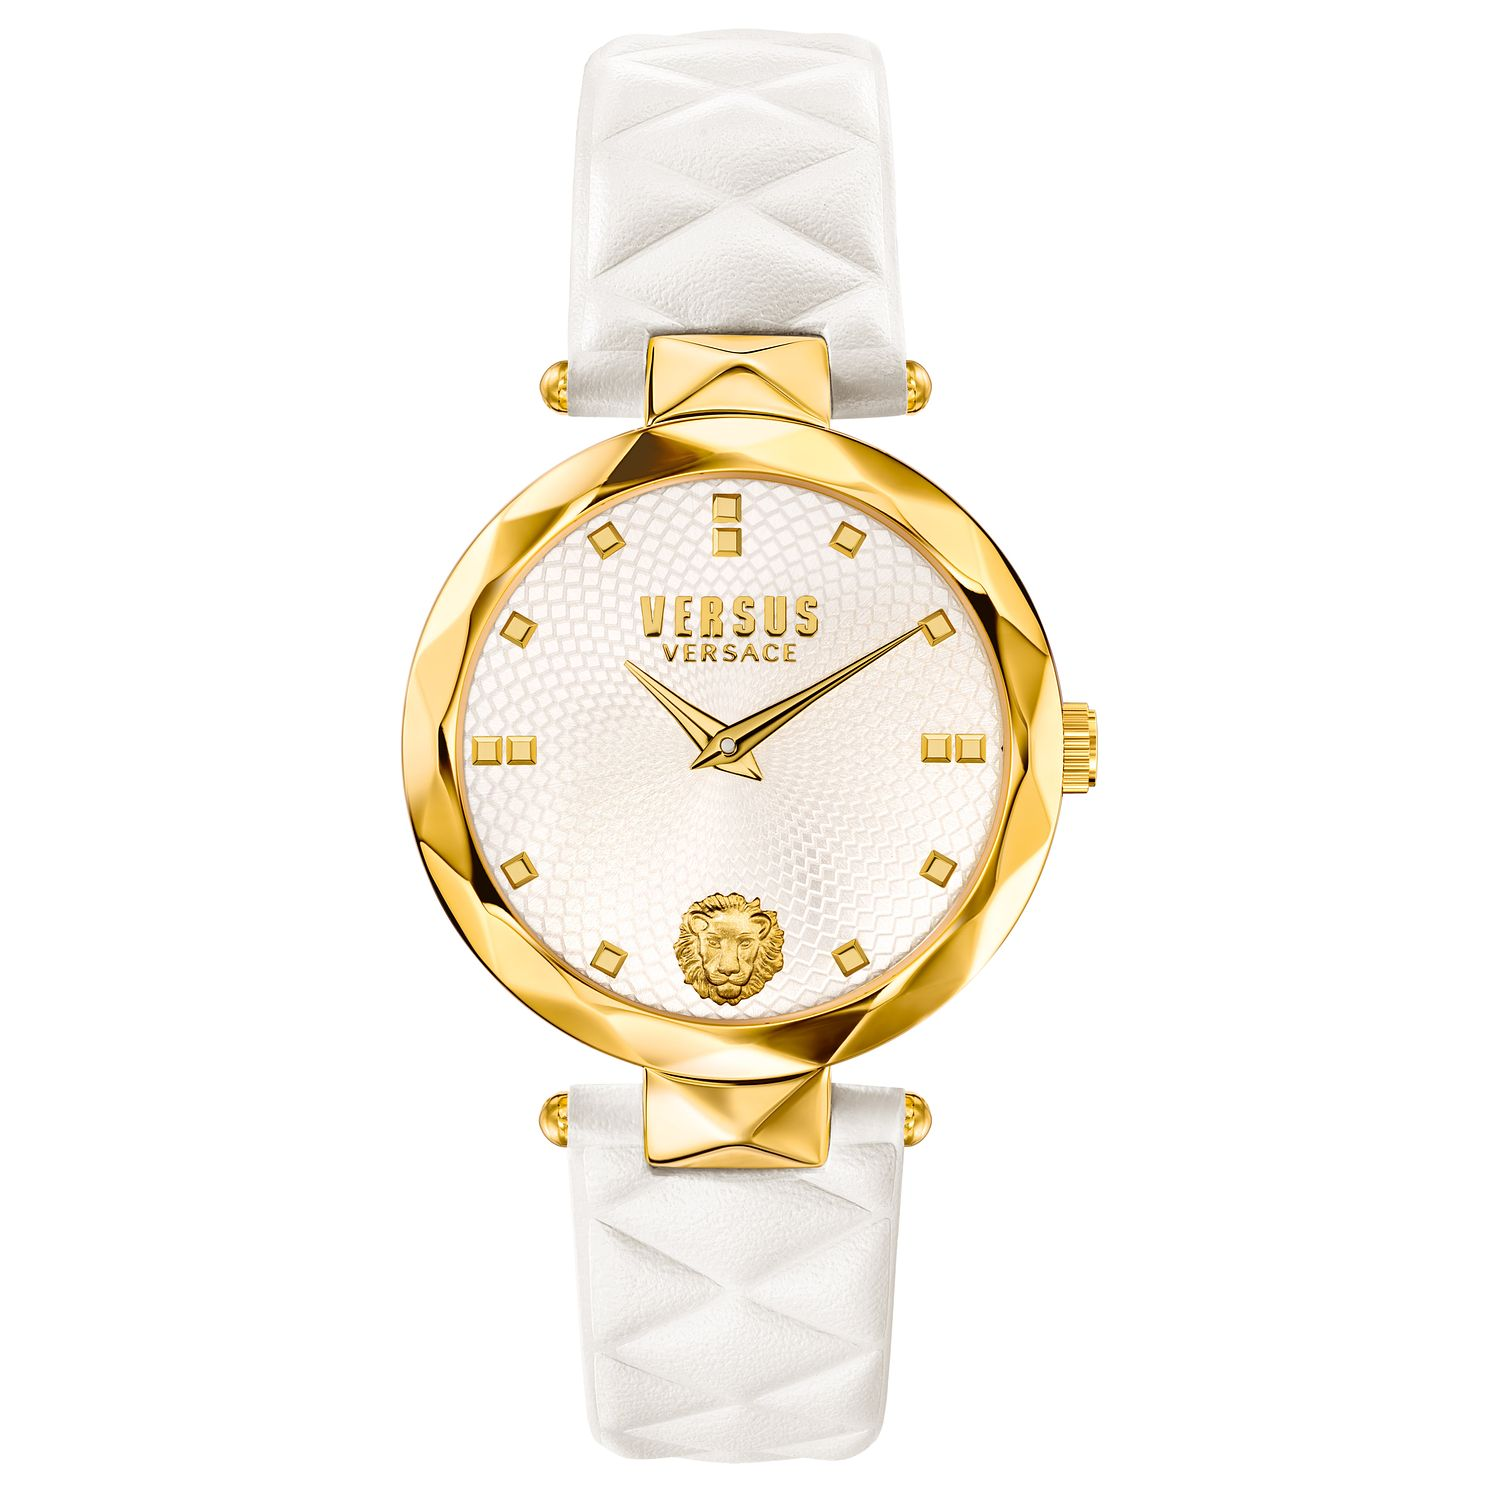 Versus Versace Ladies' White Leather Strap Watch - Product number 8391300